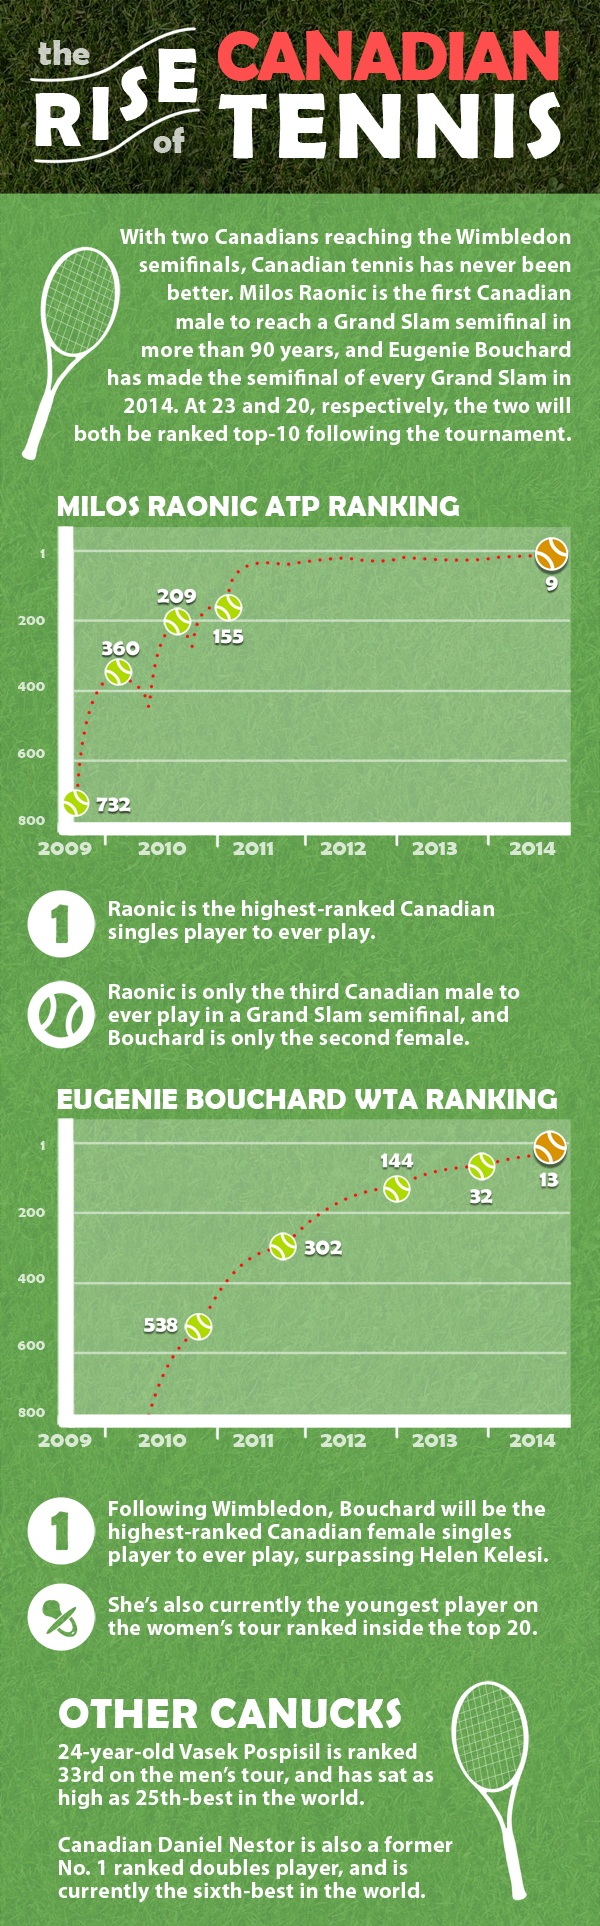 The rise of Canadian tennis